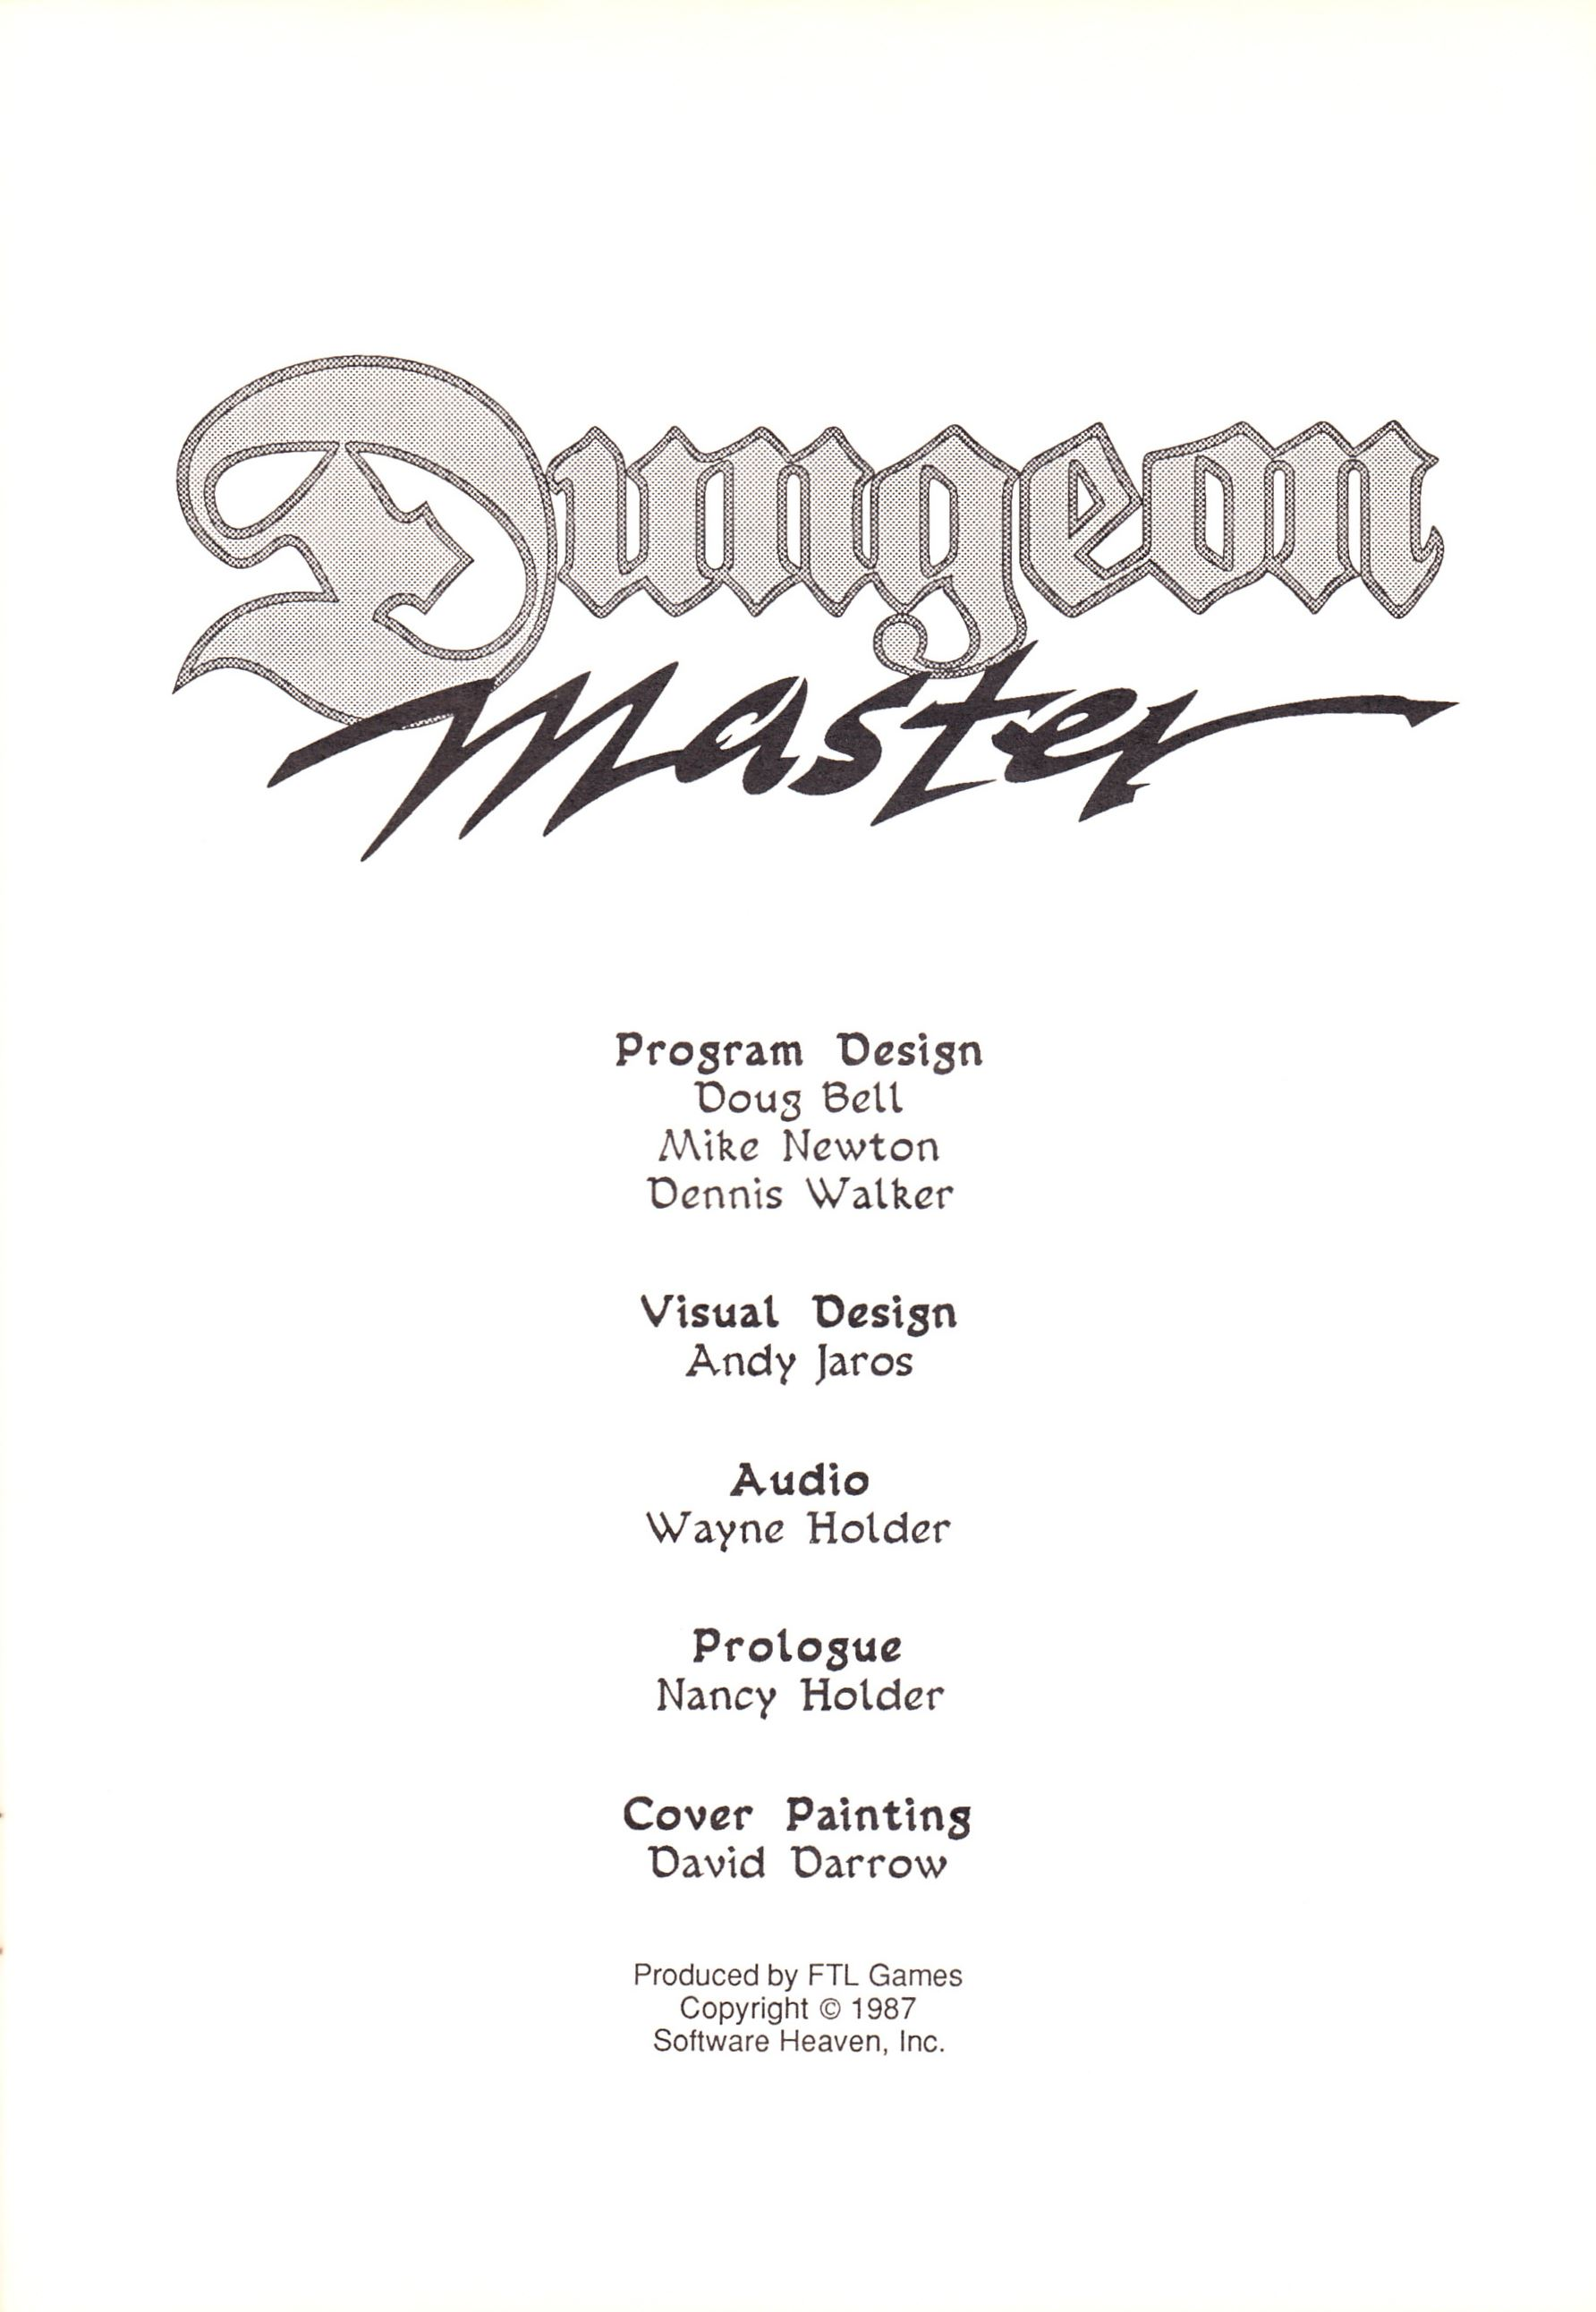 Game - Dungeon Master - US - Atari ST - Early Box - Manual - Page 003 - Scan